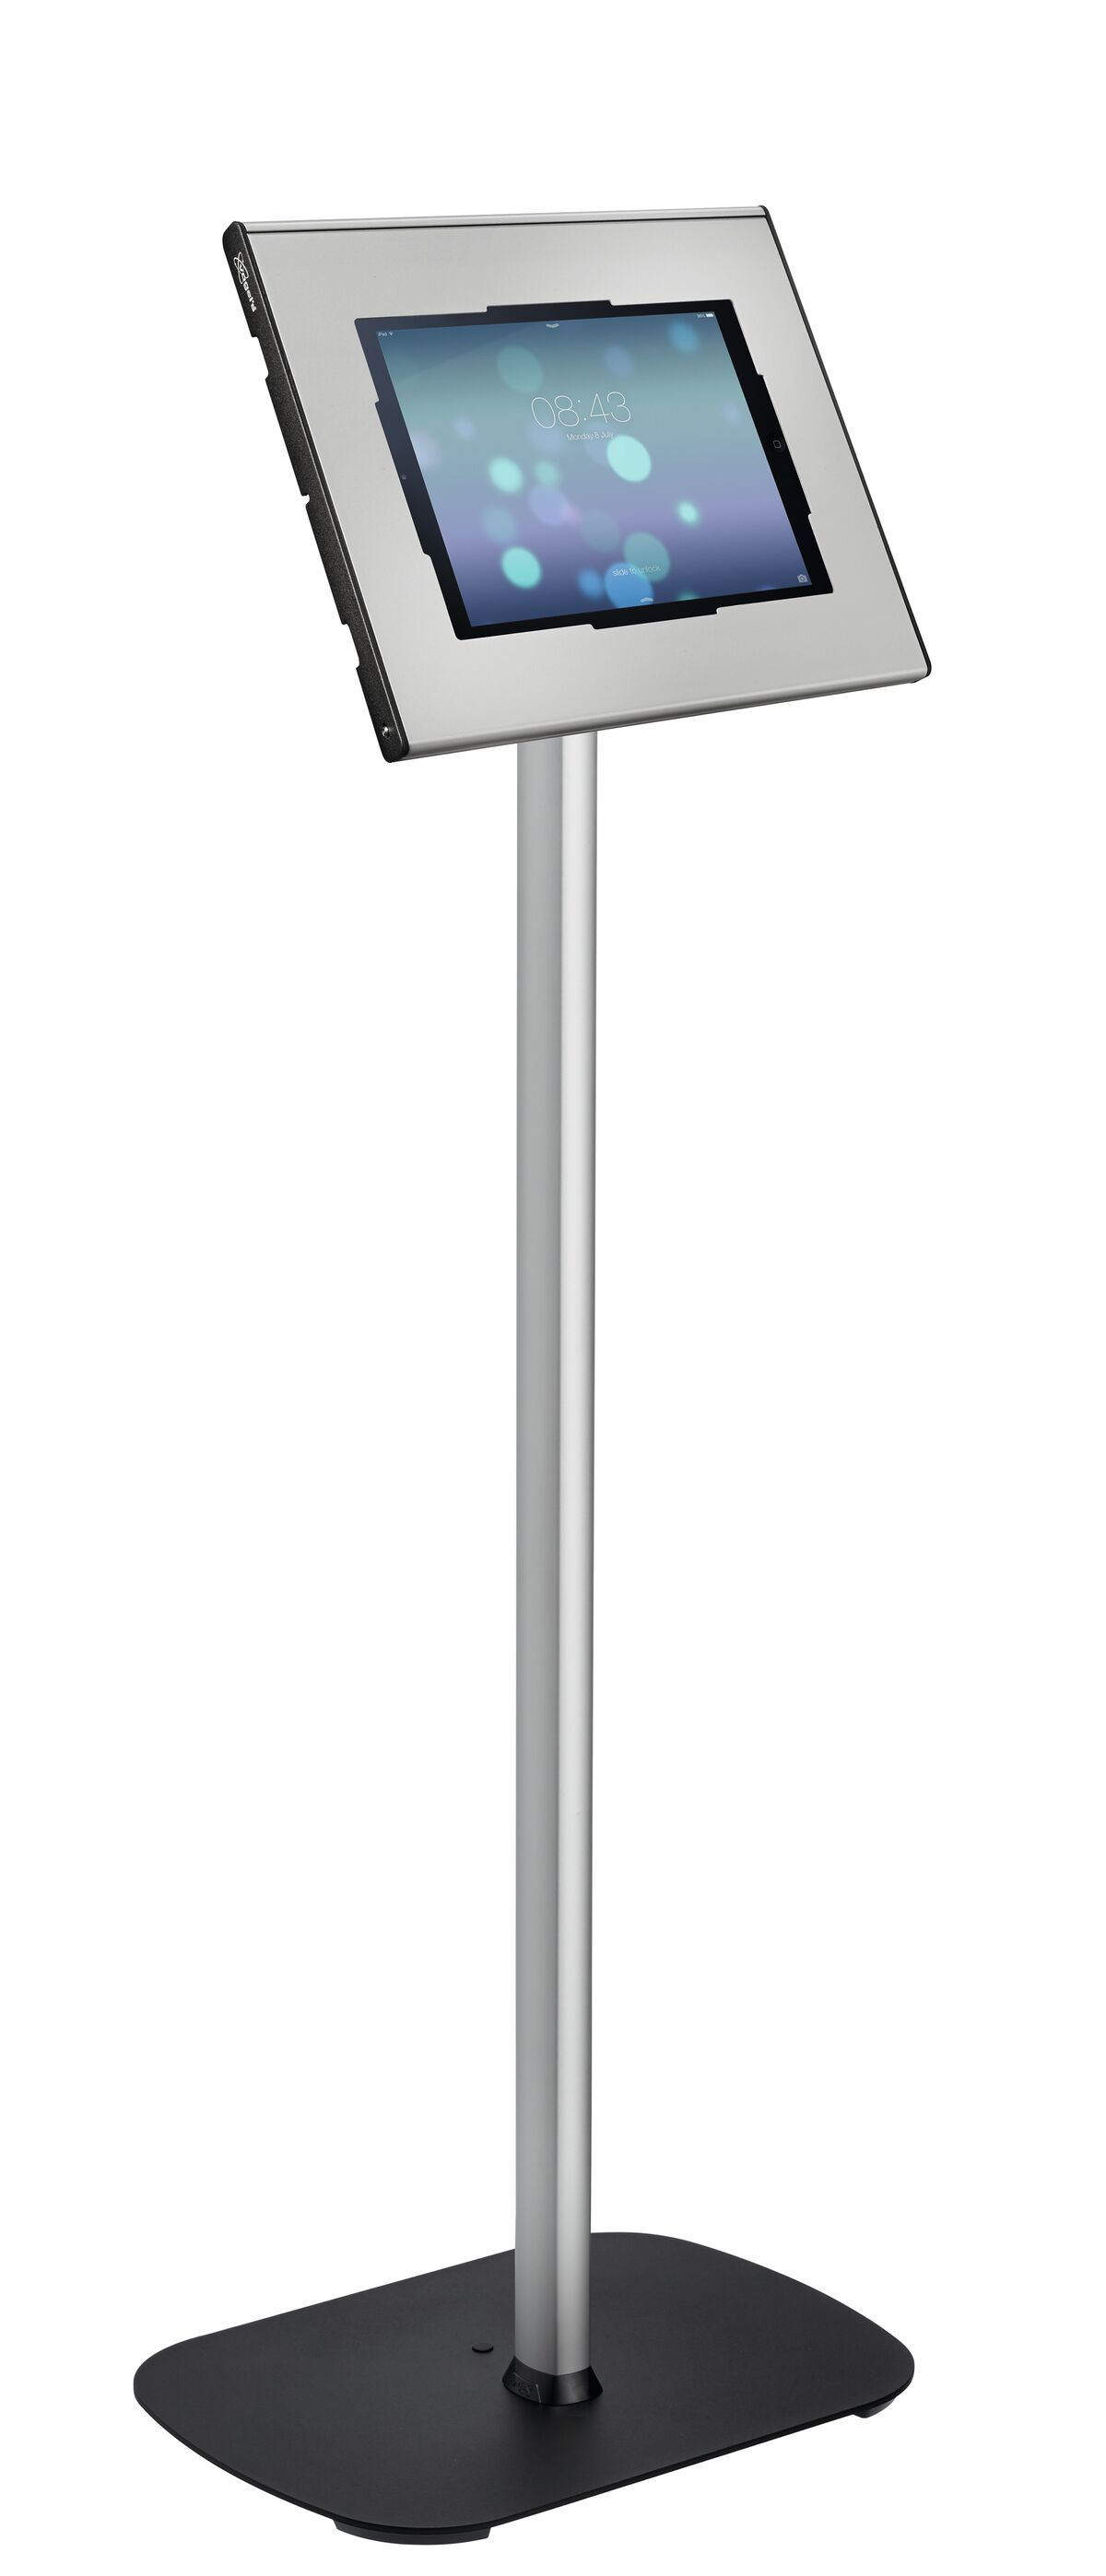 Vogel's PTA 3101 Floor stand - Application